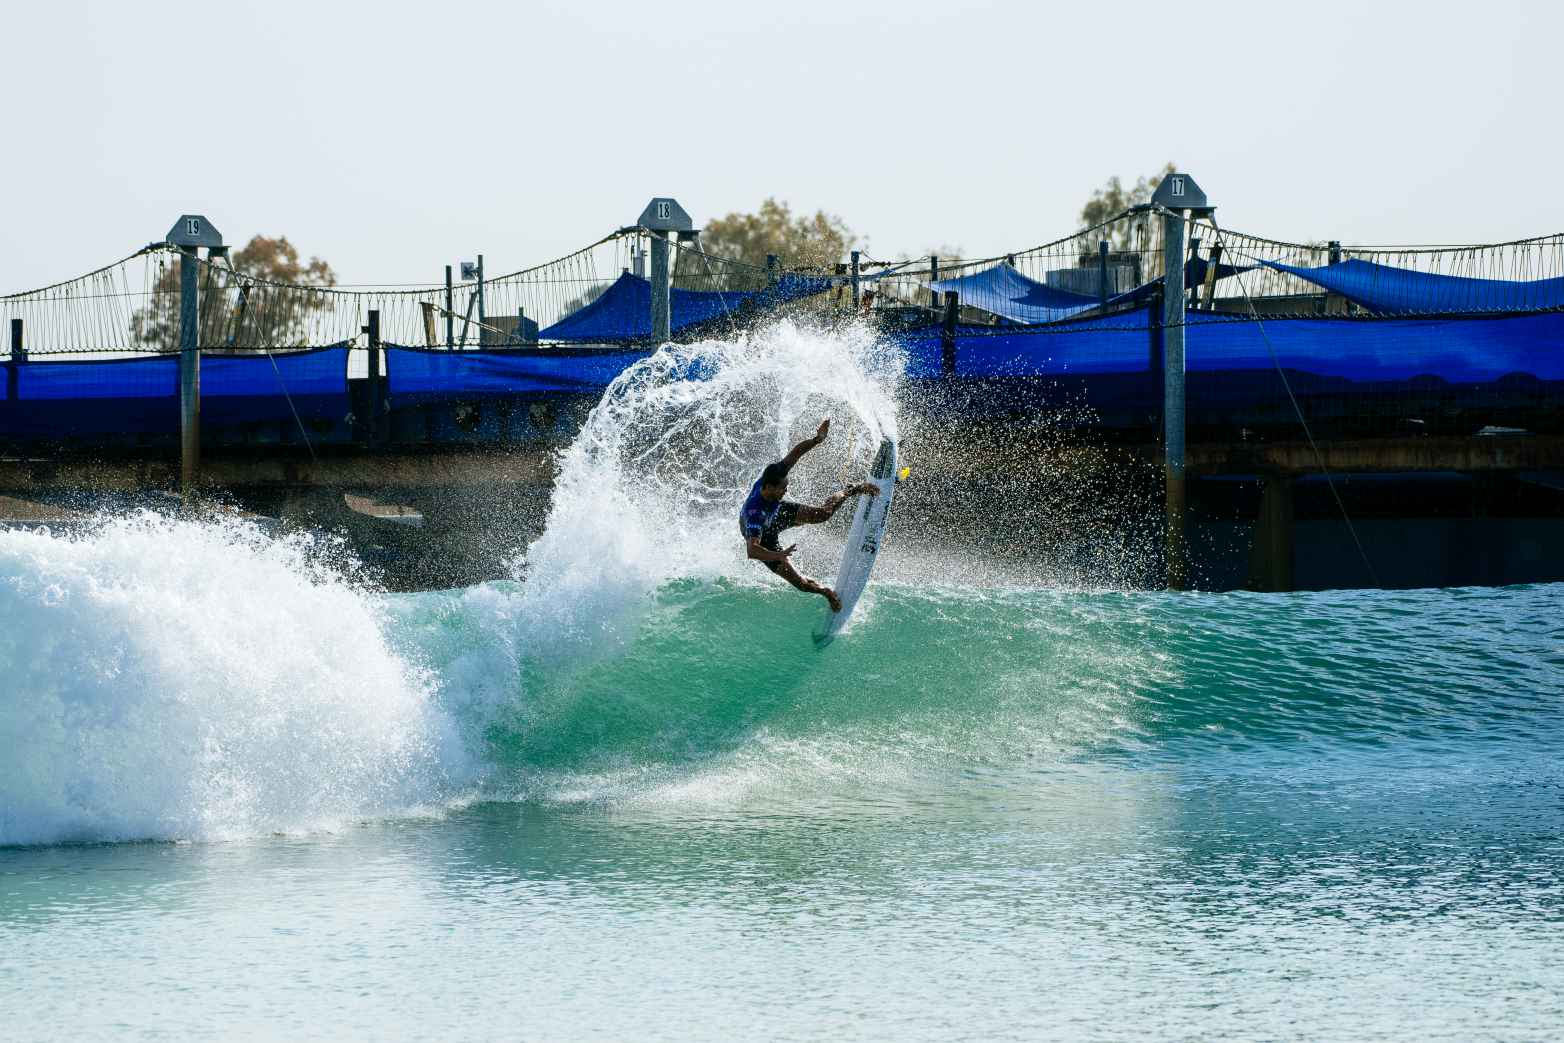 surf30 surf ranch pro 2021 wsl surf OLeary C Ranch21 PNN 1237